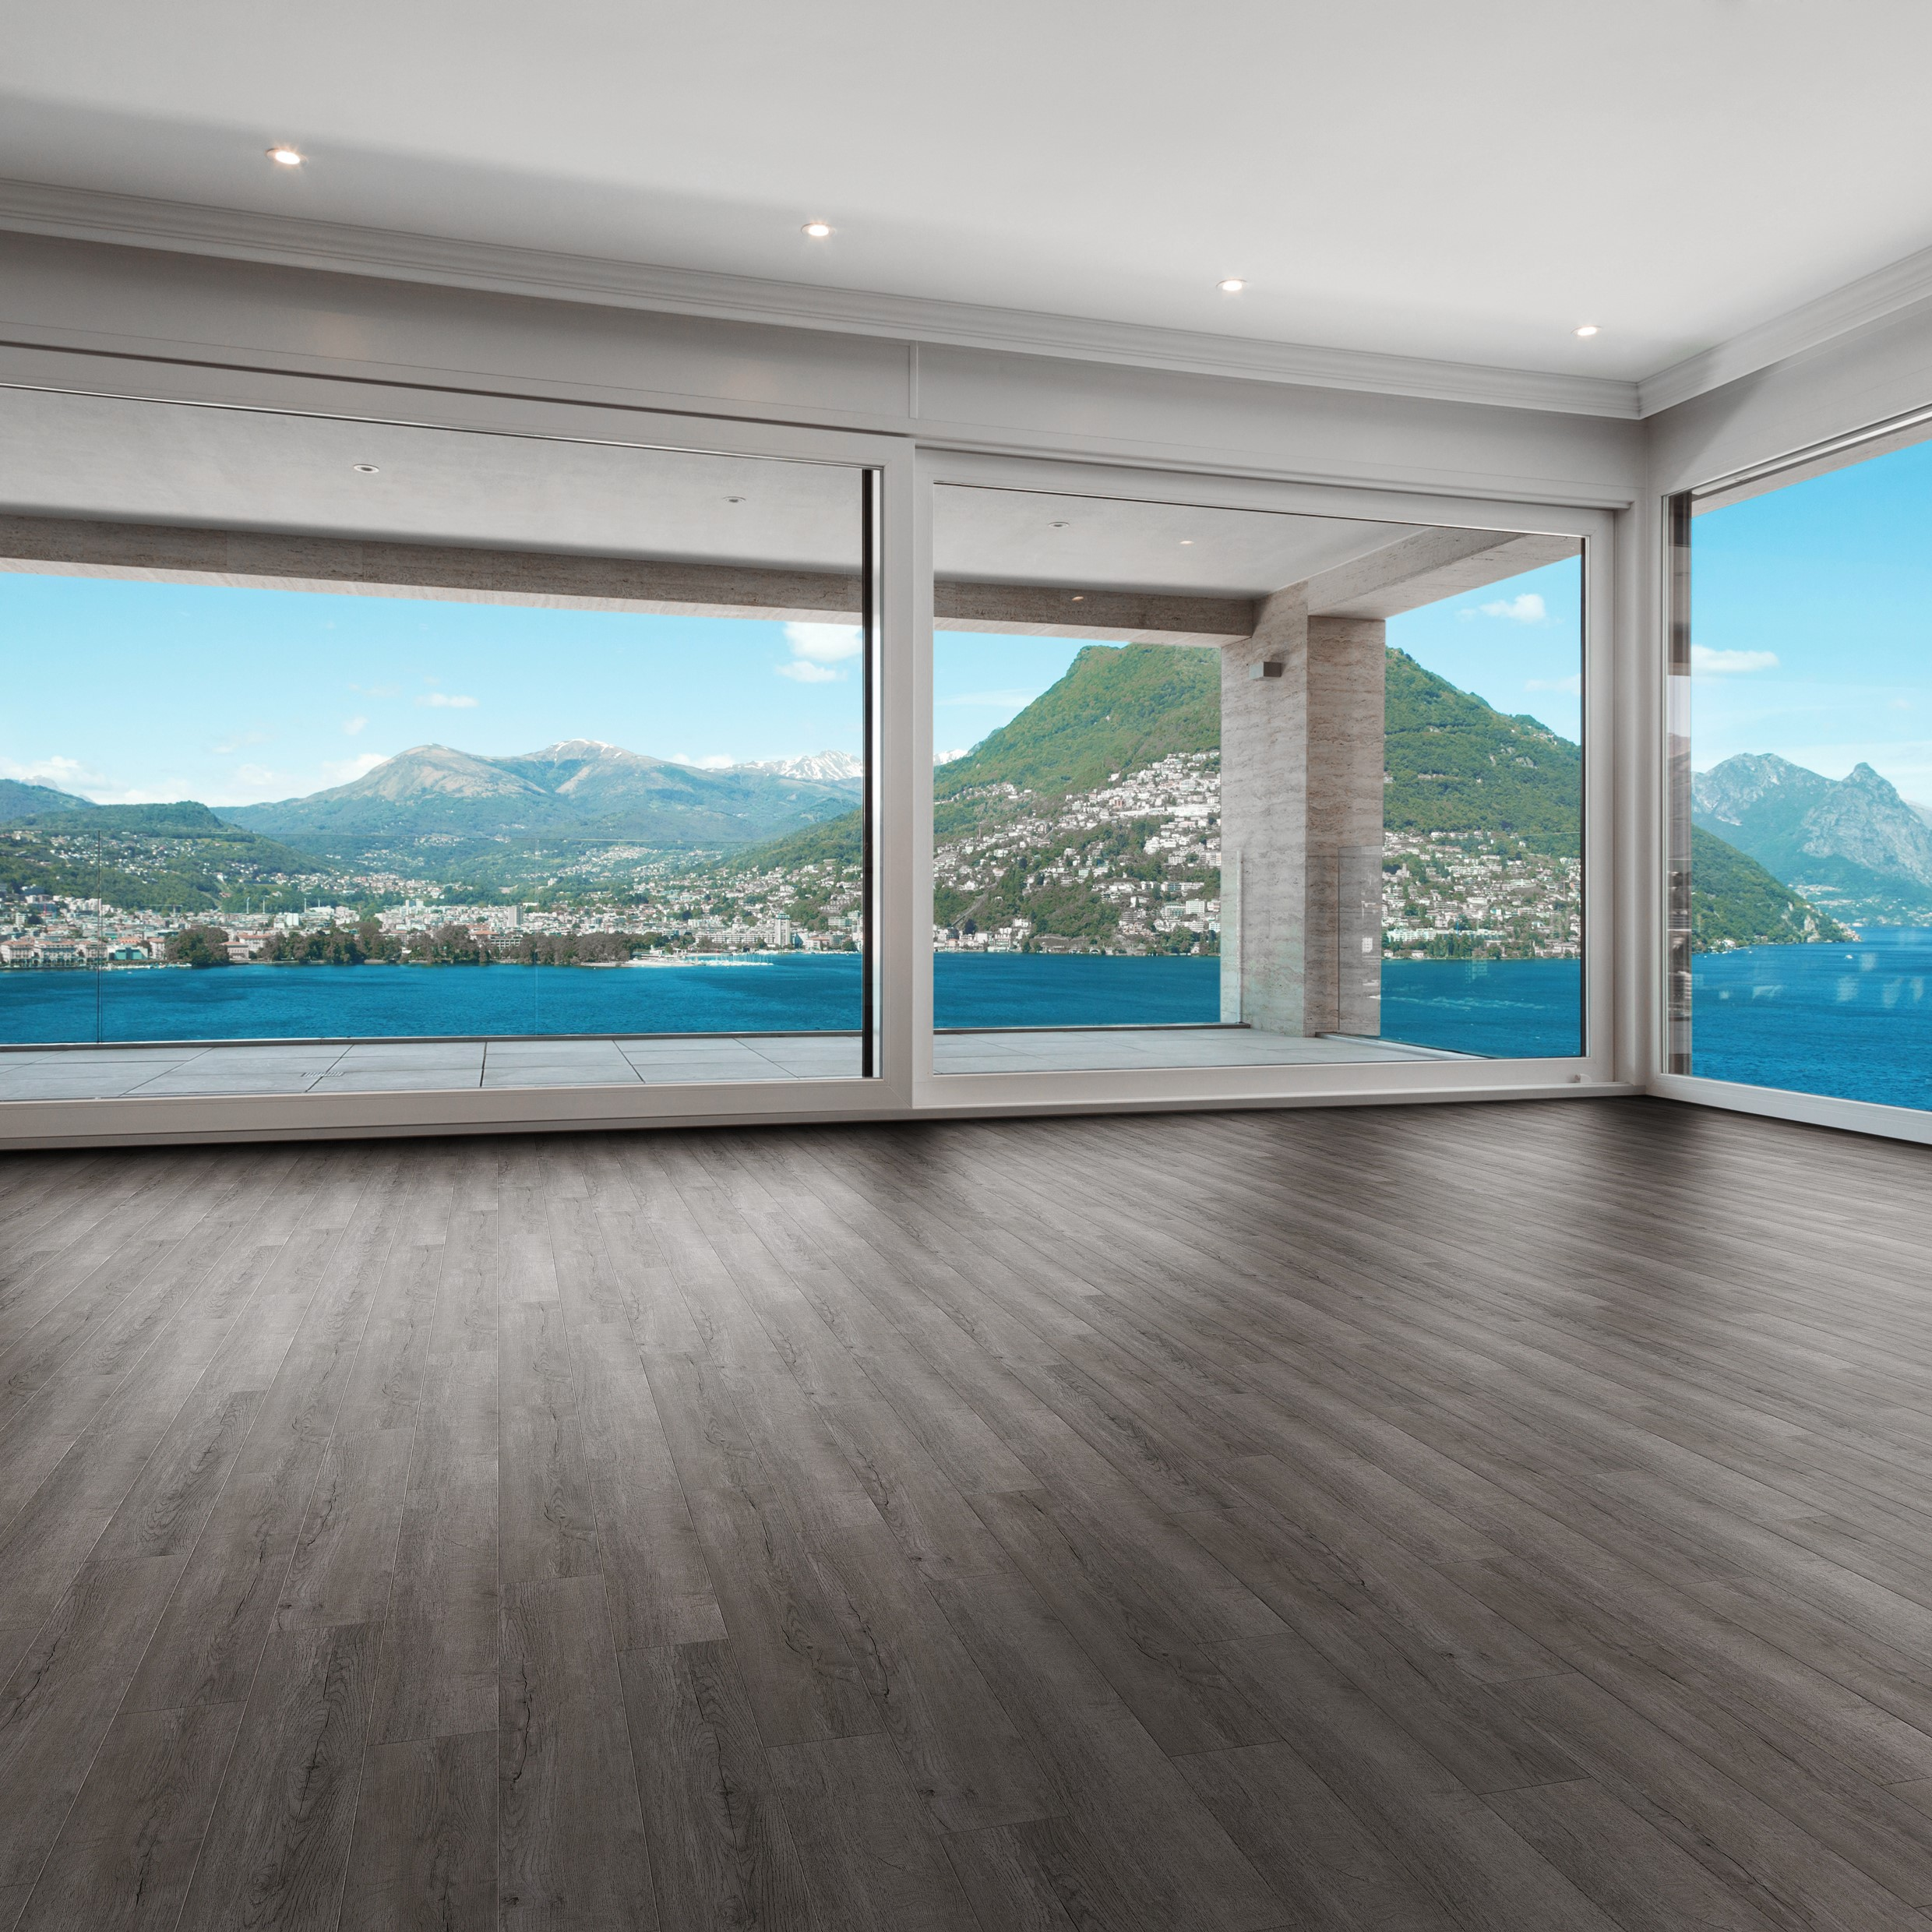 Luvanto Endure Pro LVT Smoked Charcoal